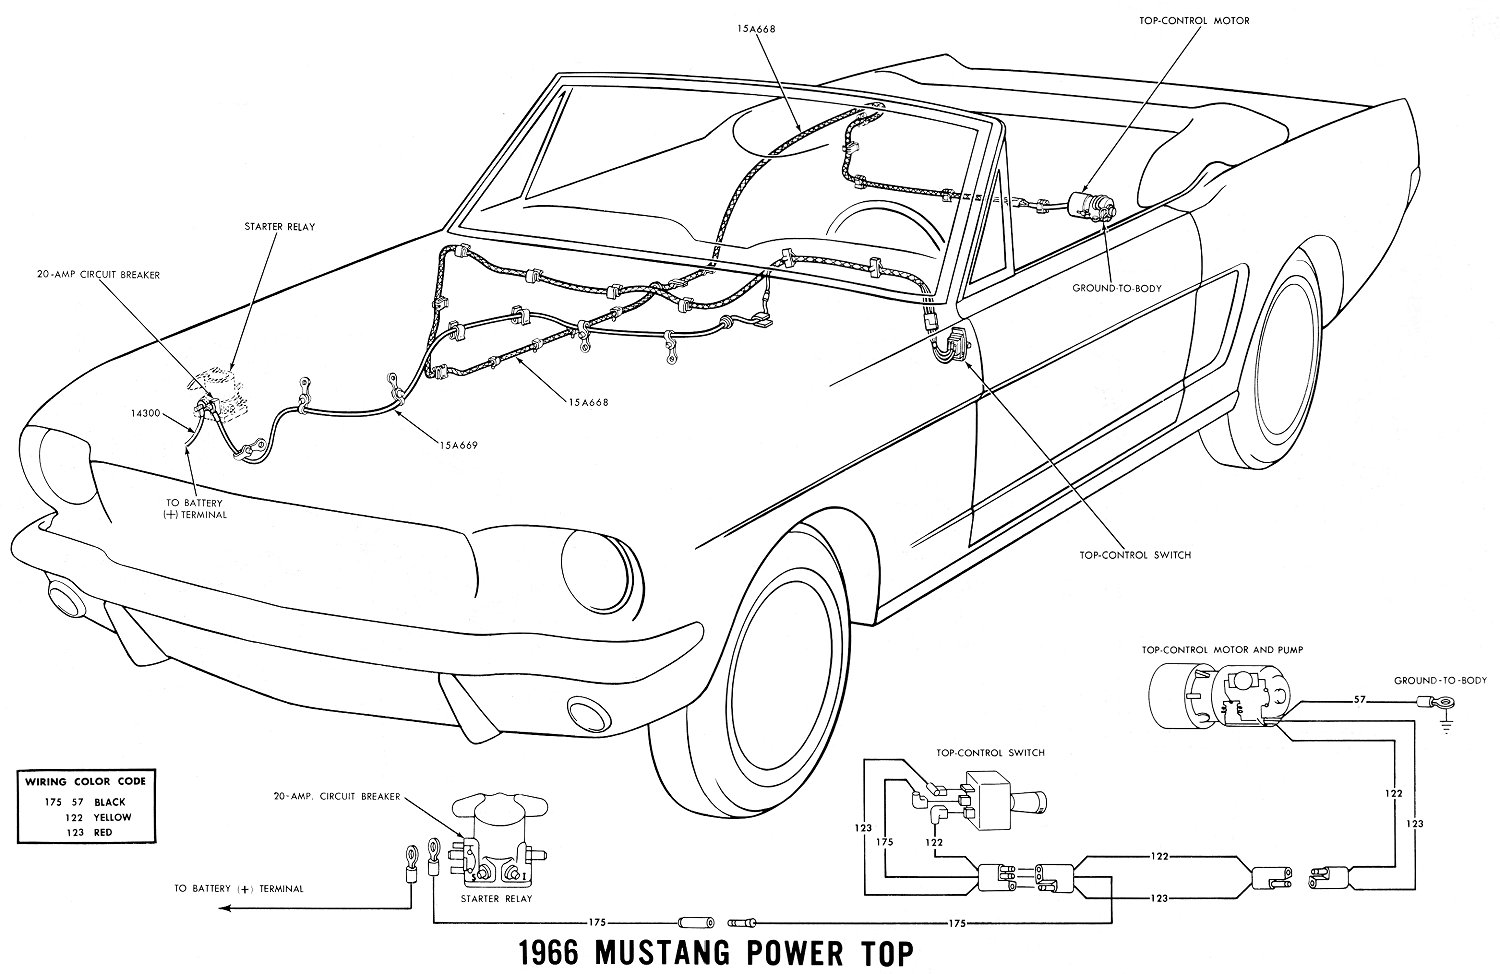 vintage mustang wiring diagrams 66 Mustang Brake Diagram 66 power convertible top details